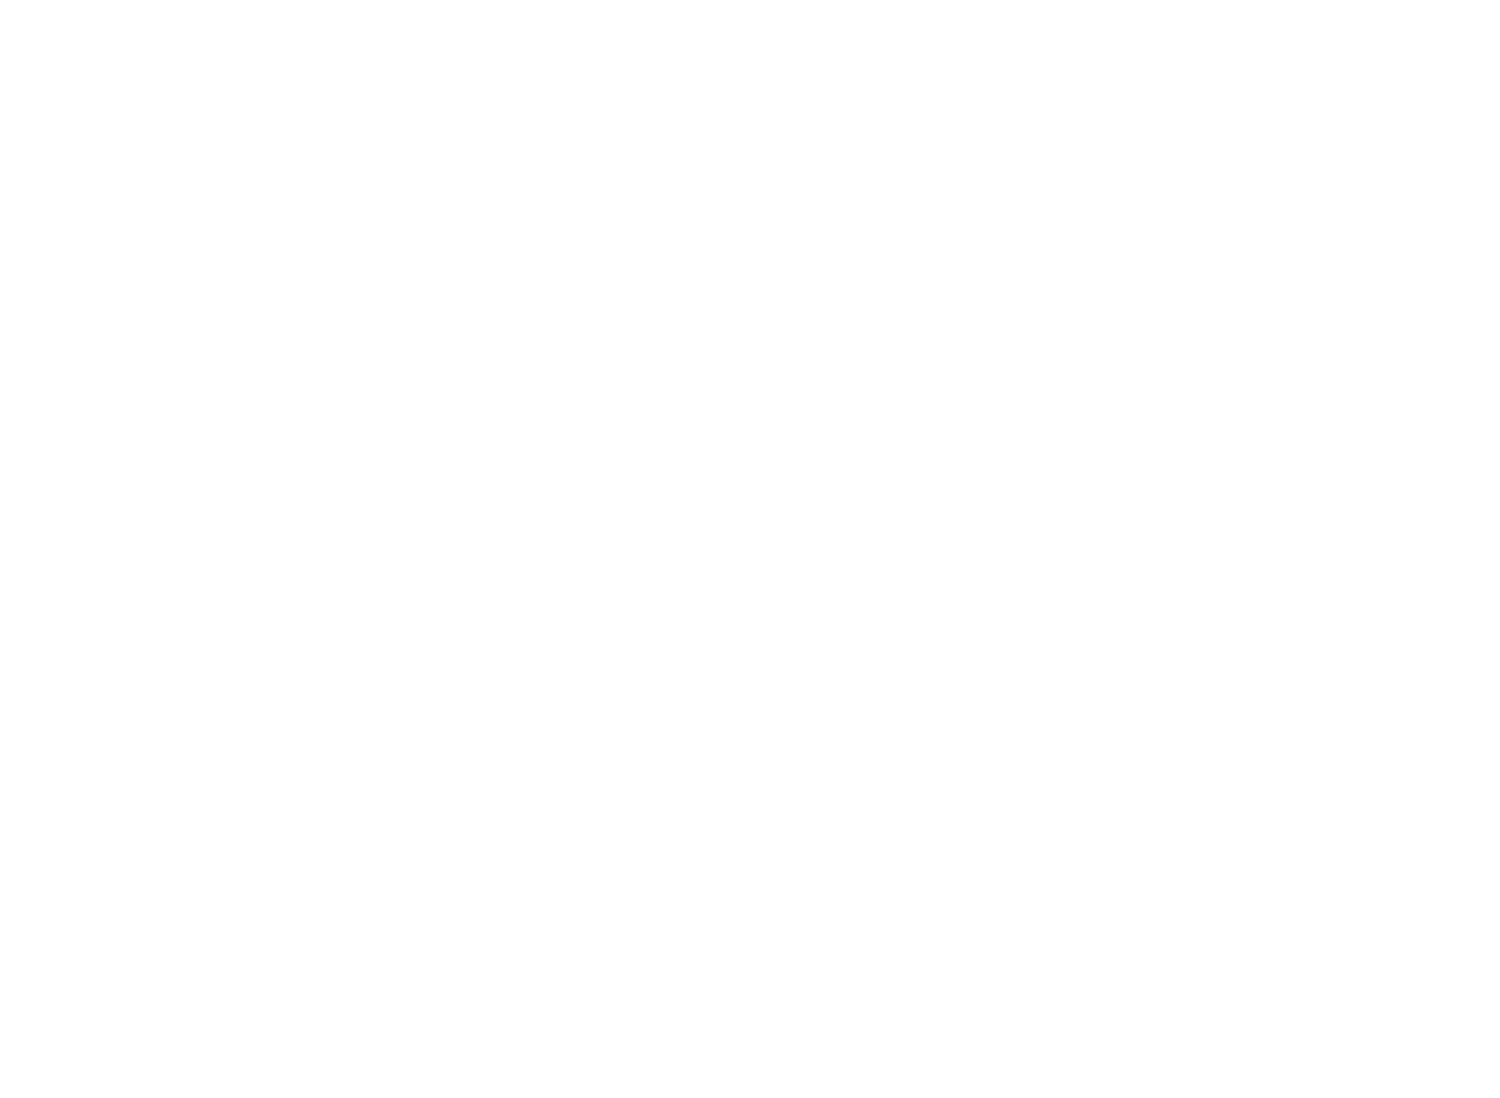 BG Powerhouse